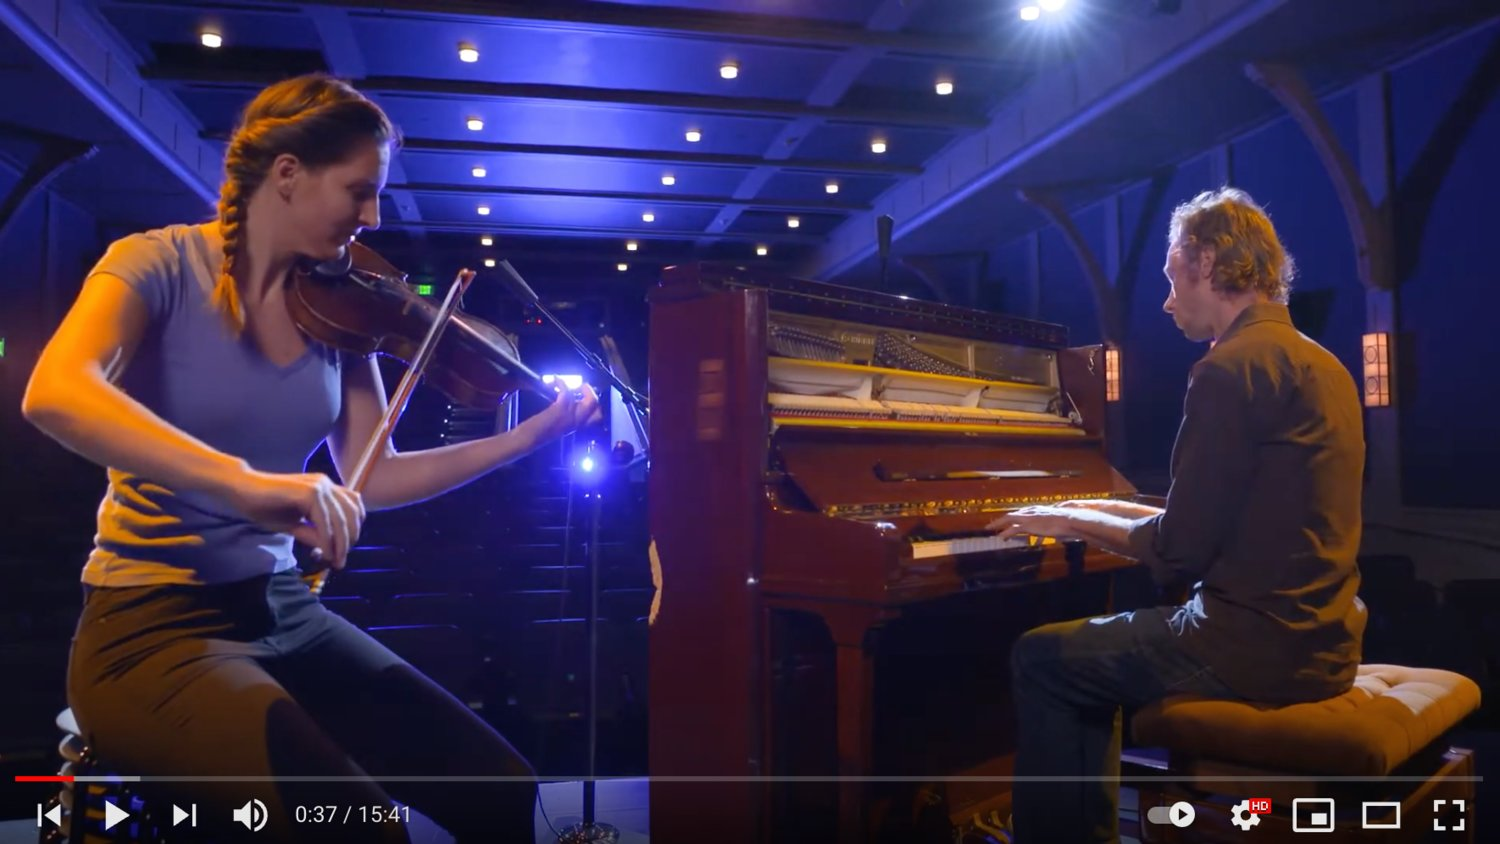 Fiddle player Greame Durovich and pianist Nigel Goss play a selection of traditional Irish songs in the Dreamland Theater's live online concert series